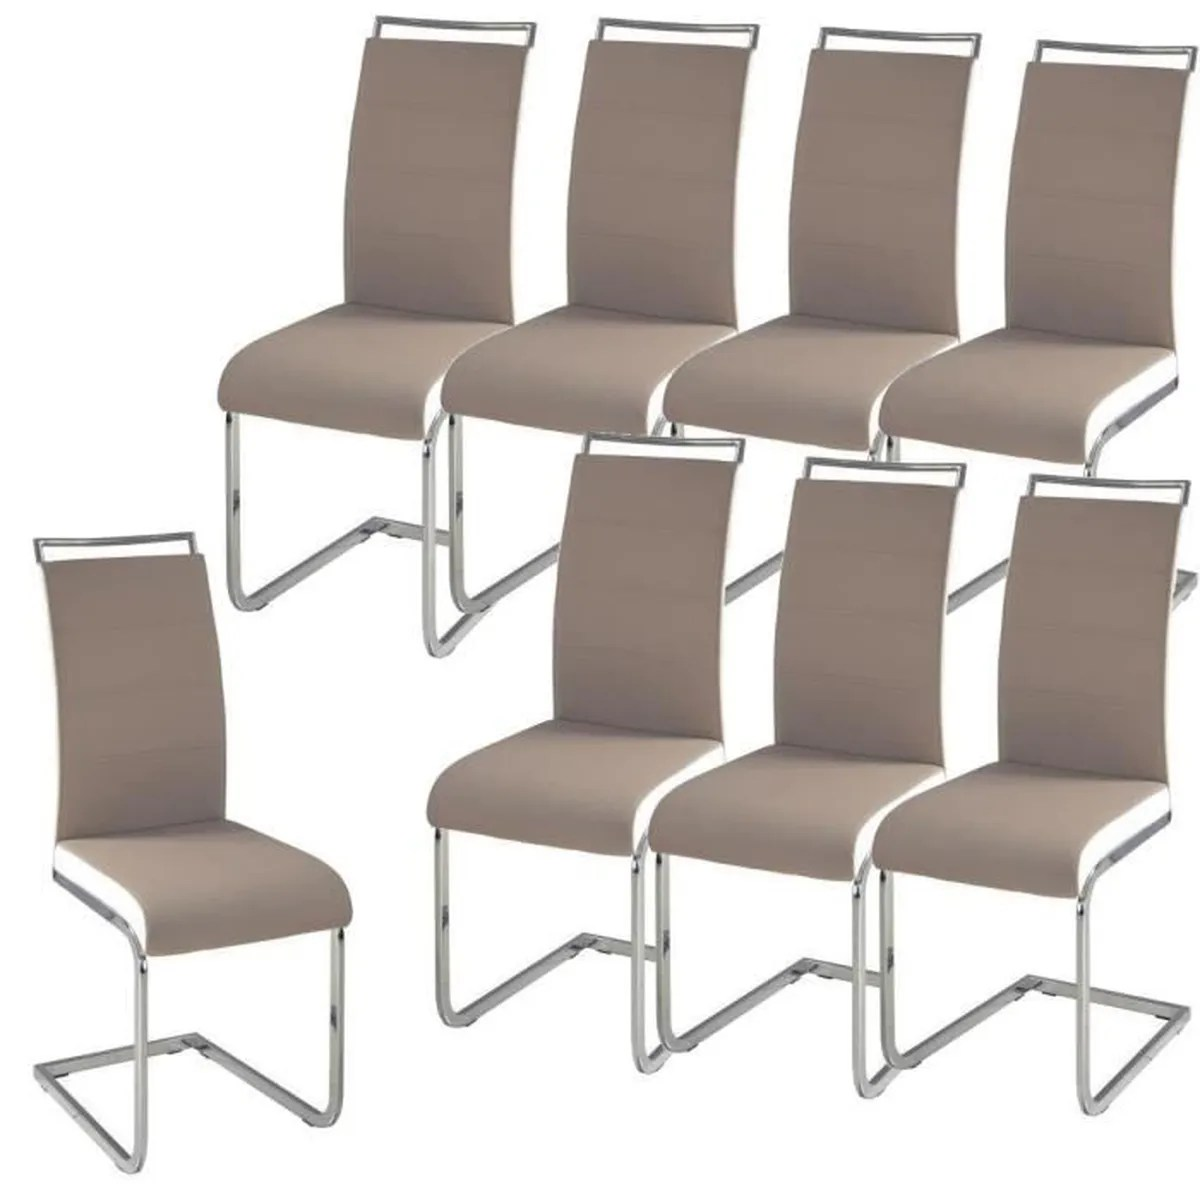 Chaise Salon Dylan Lot De 8 Chaises Salon Taupe Blanc Achat Vente